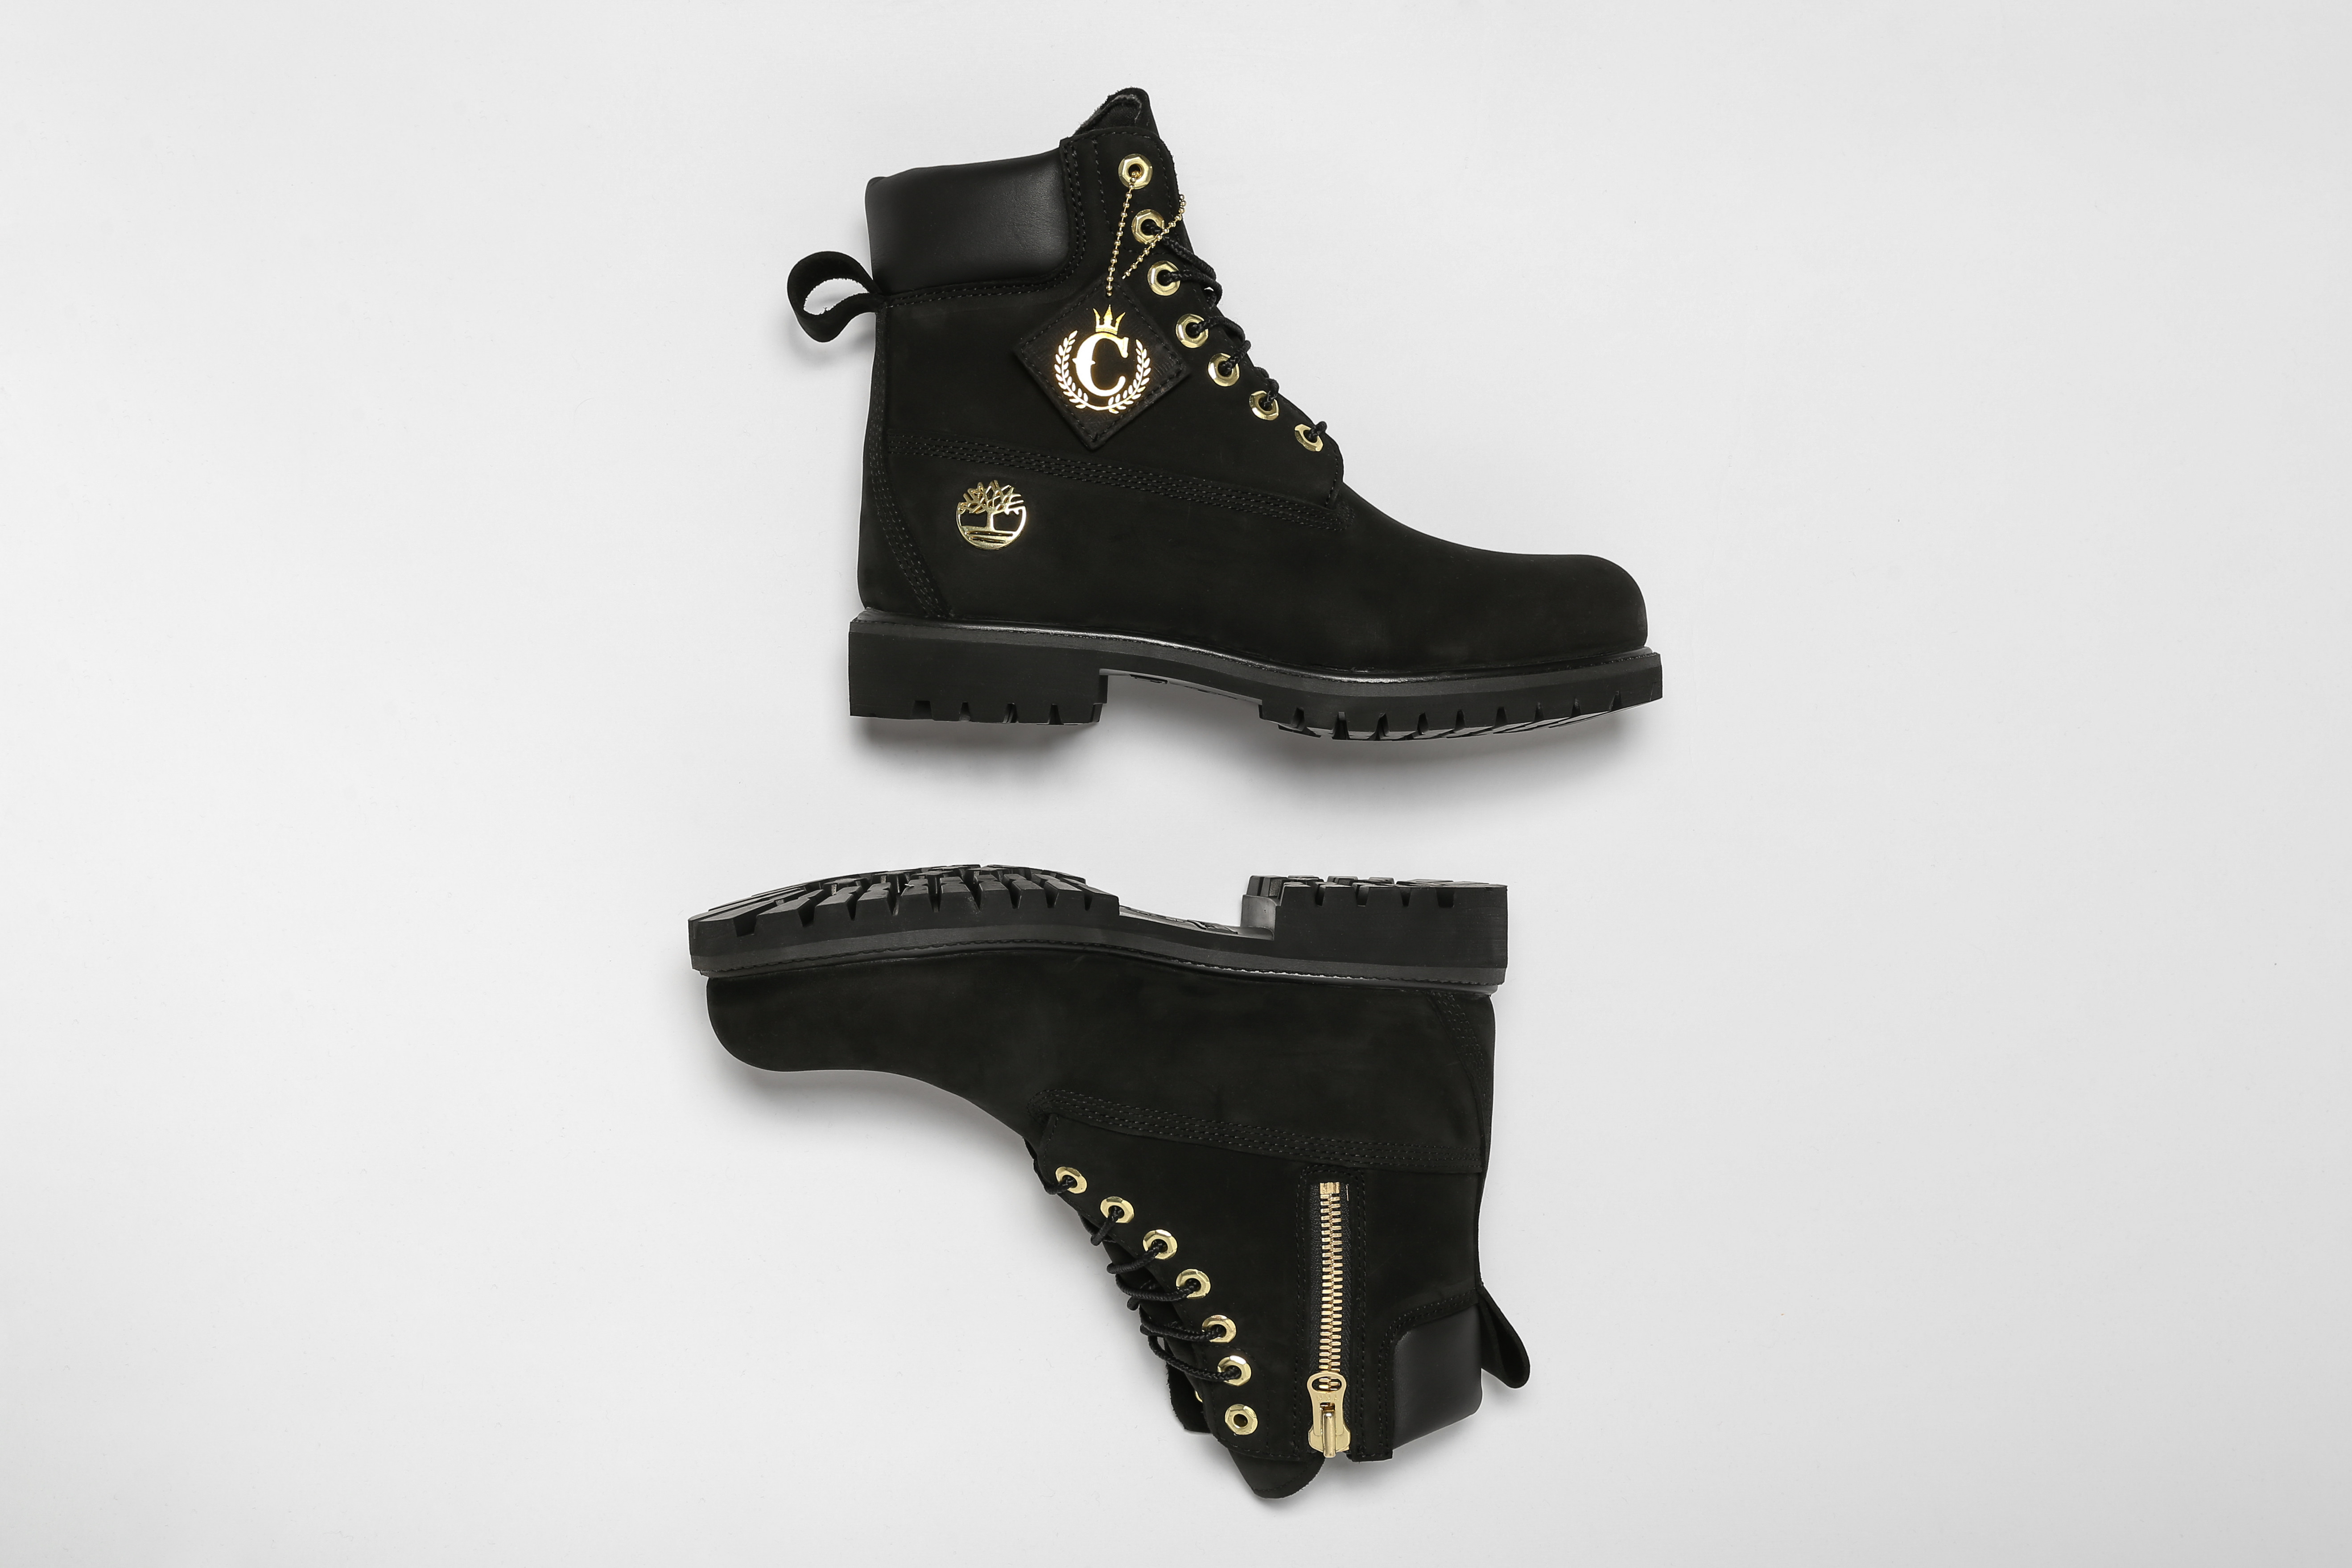 Timberland Culture Kings Black and Gold